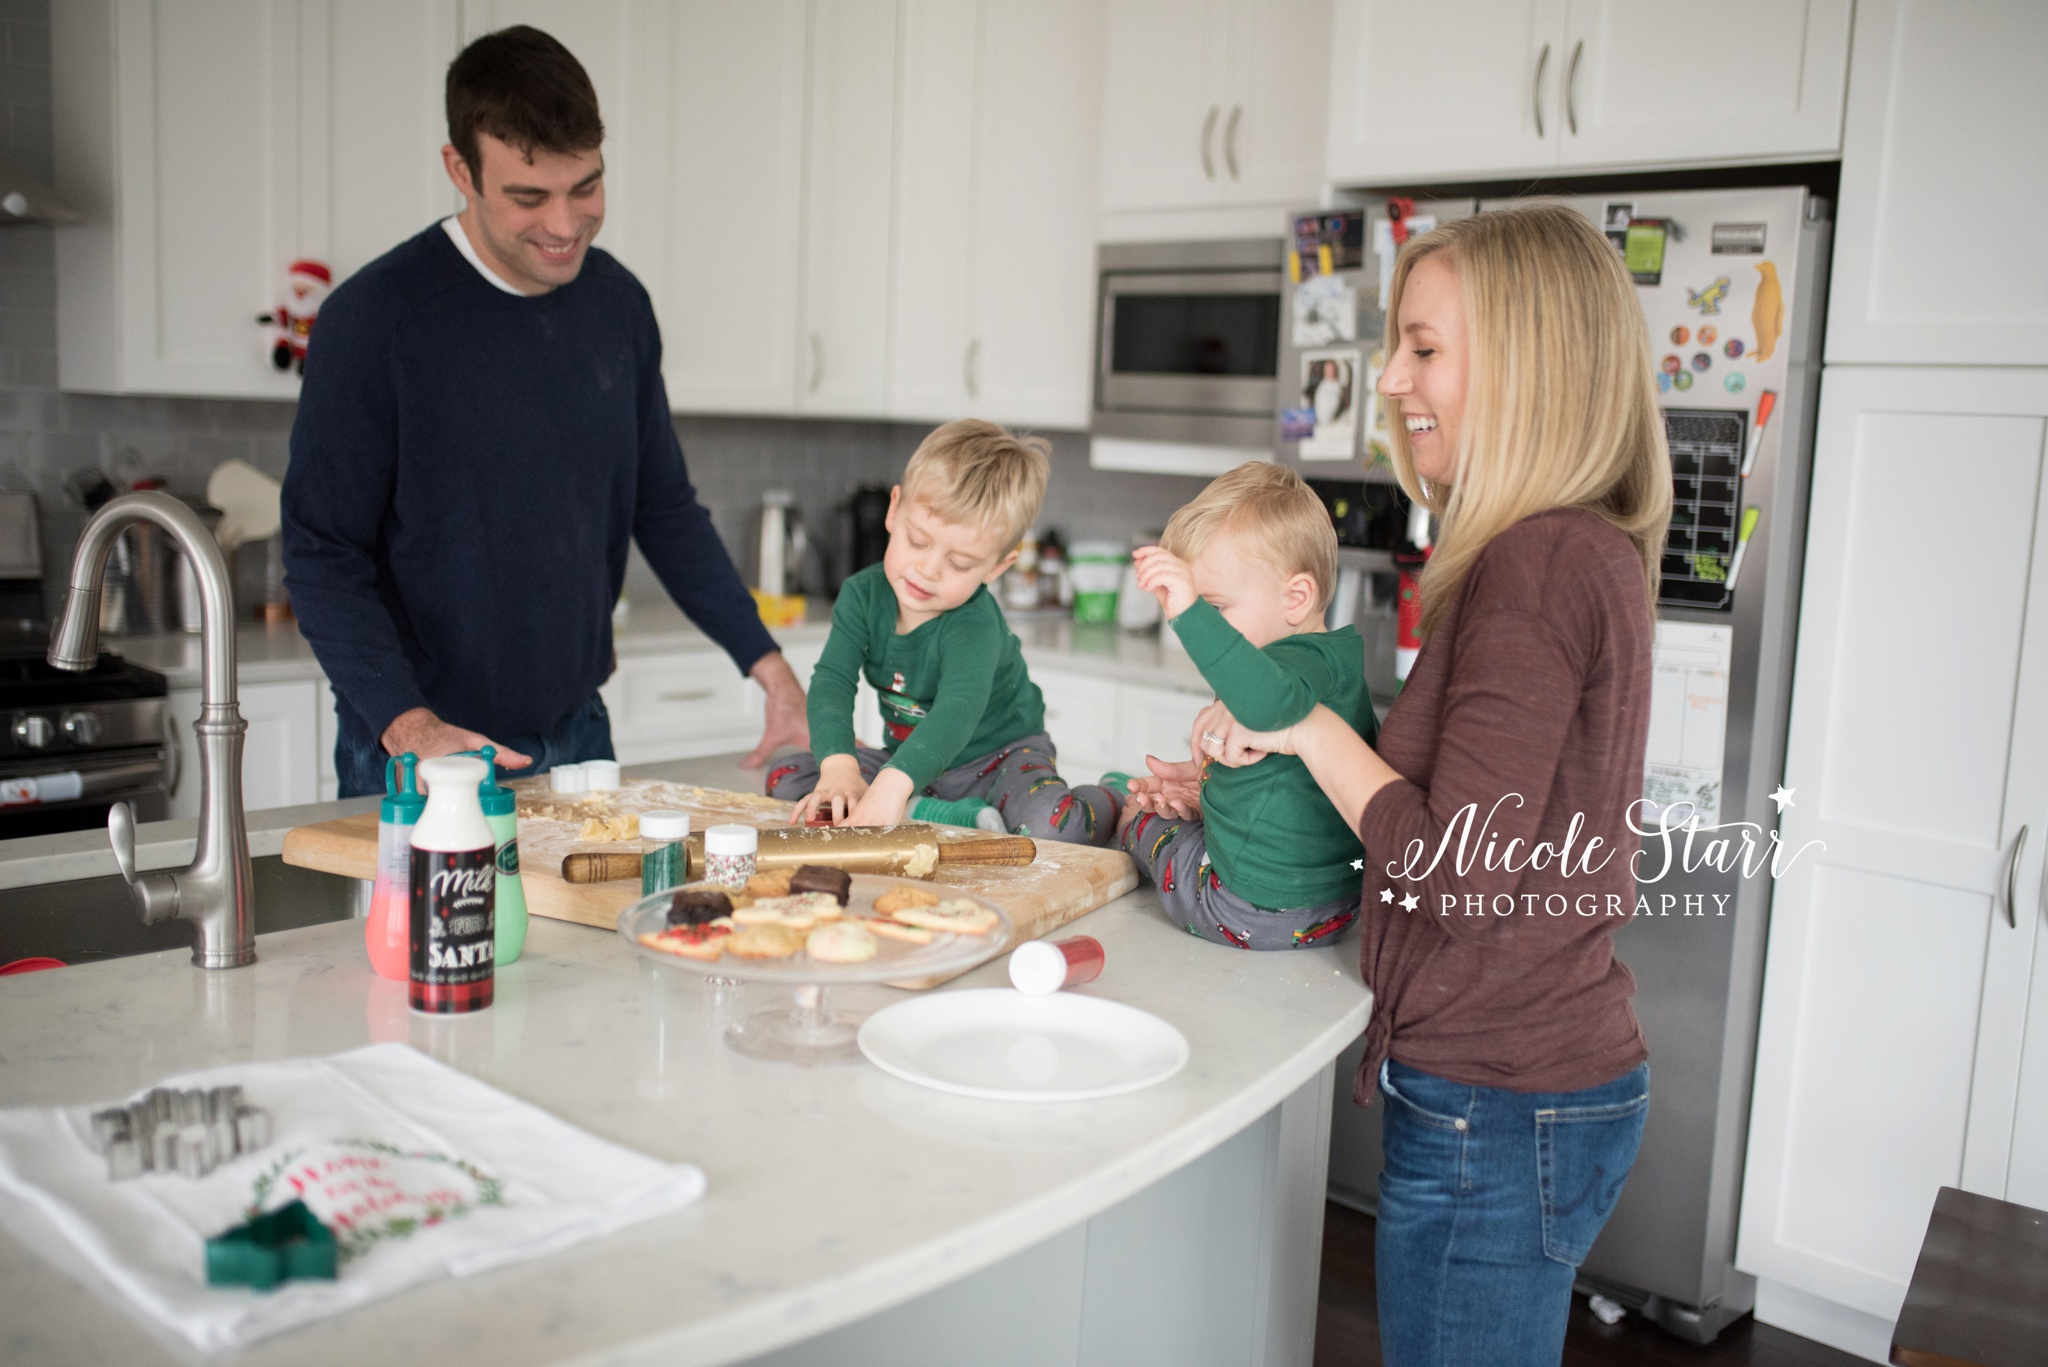 nicole starr photography, saratoga springs lifestyle photographer, holiday cookie baking photoshoot_0002.jpg